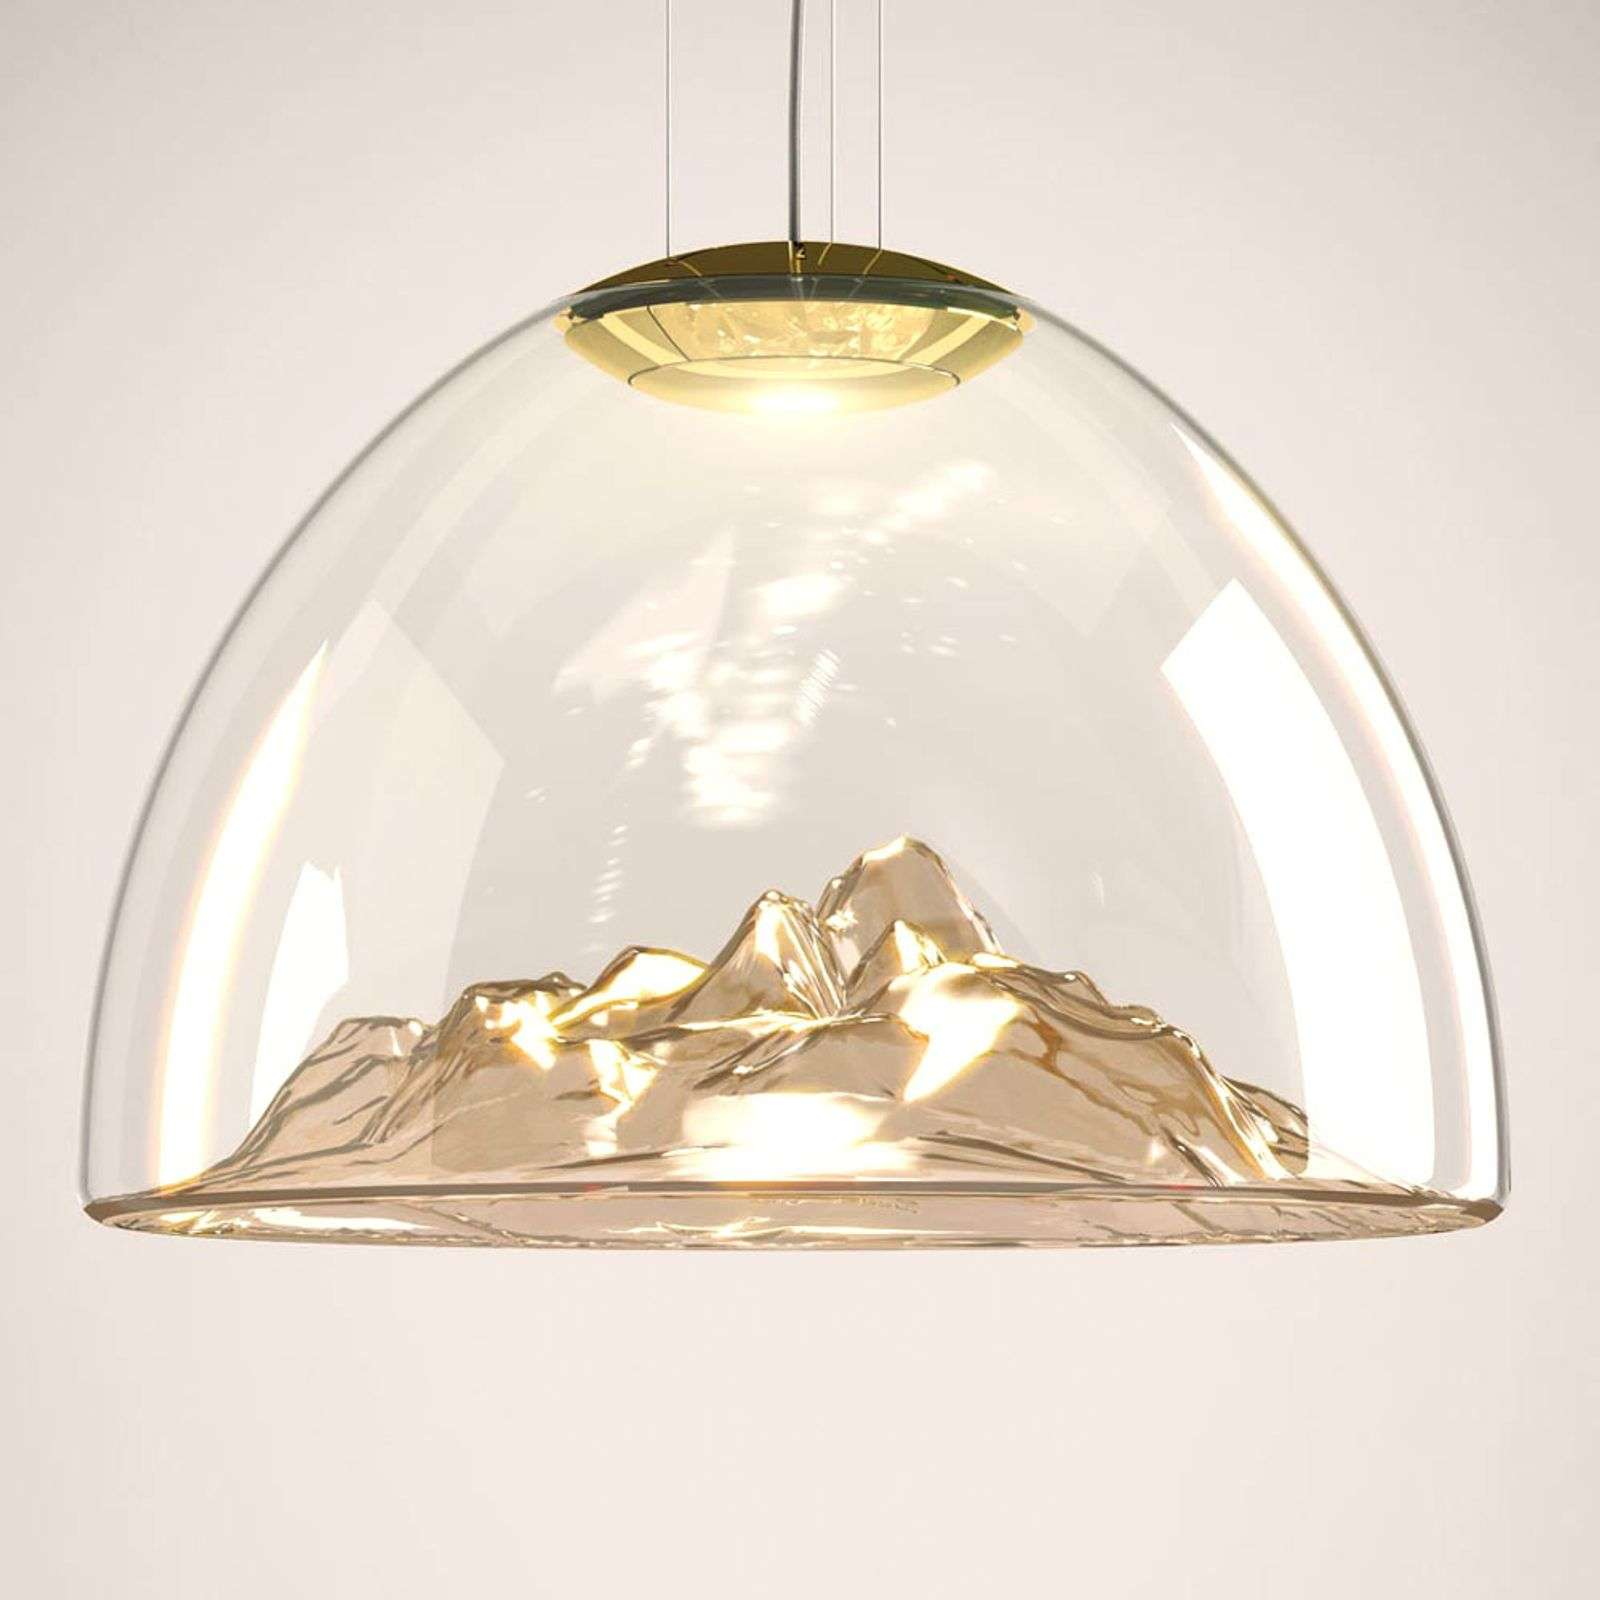 Belle suspension LED de designer Mountain View